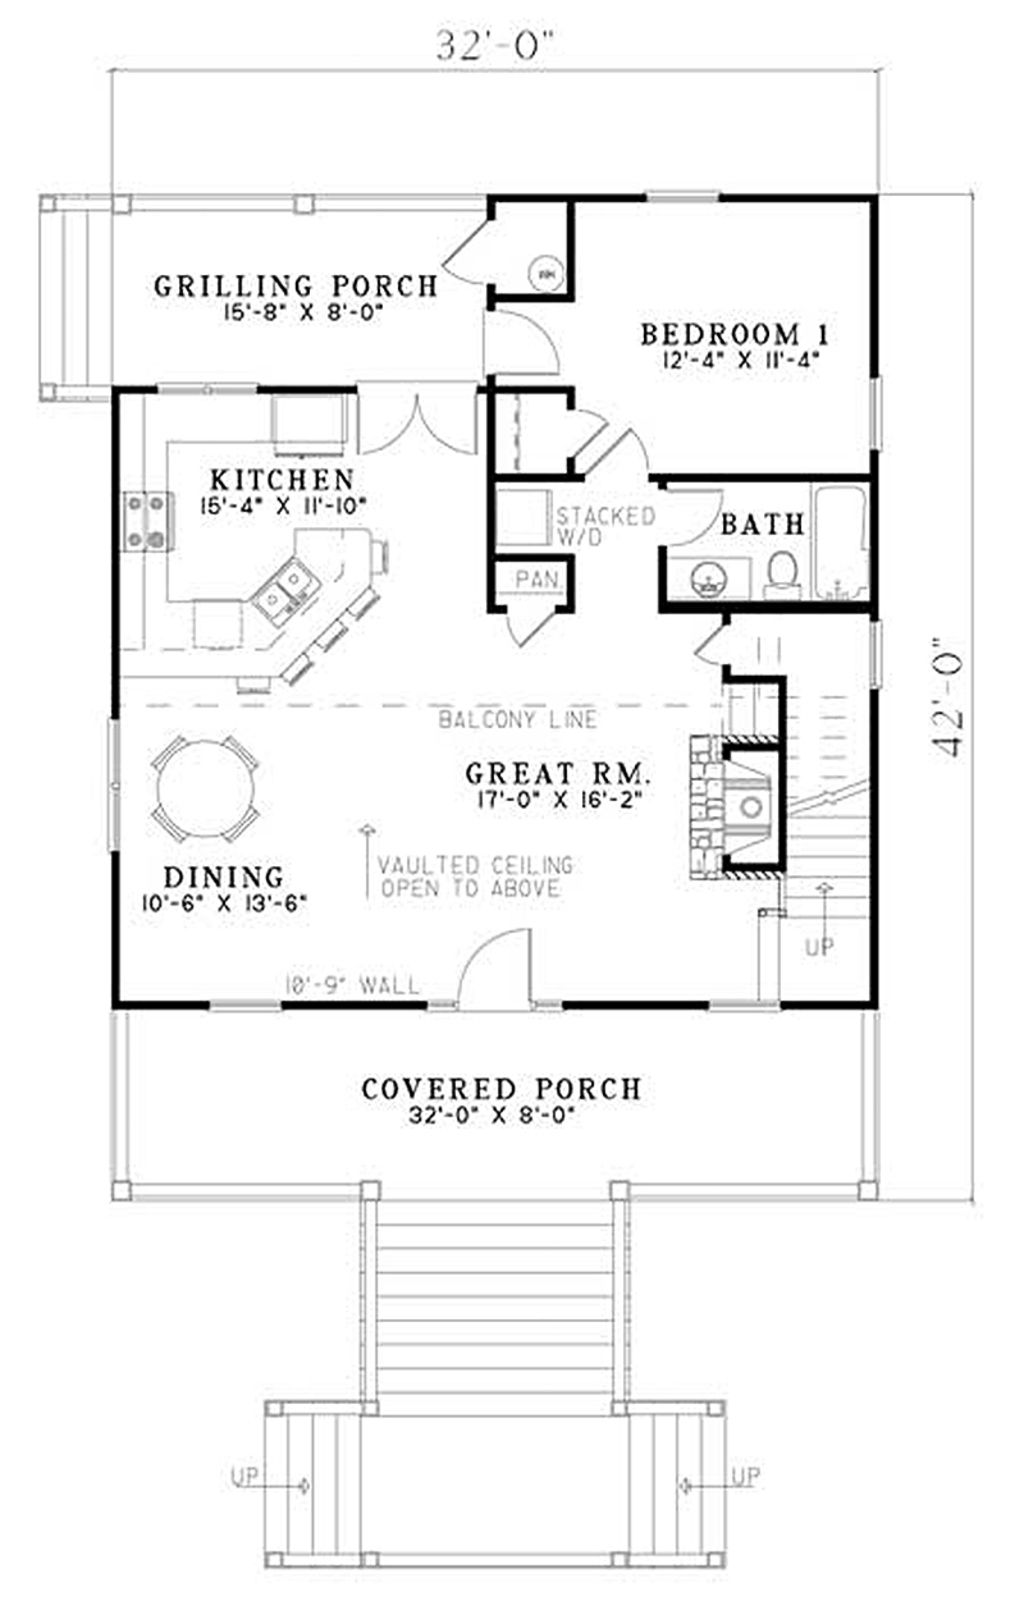 Cabin style house plan 2 beds 2 baths 1400 sq ft plan for 1400 sq ft